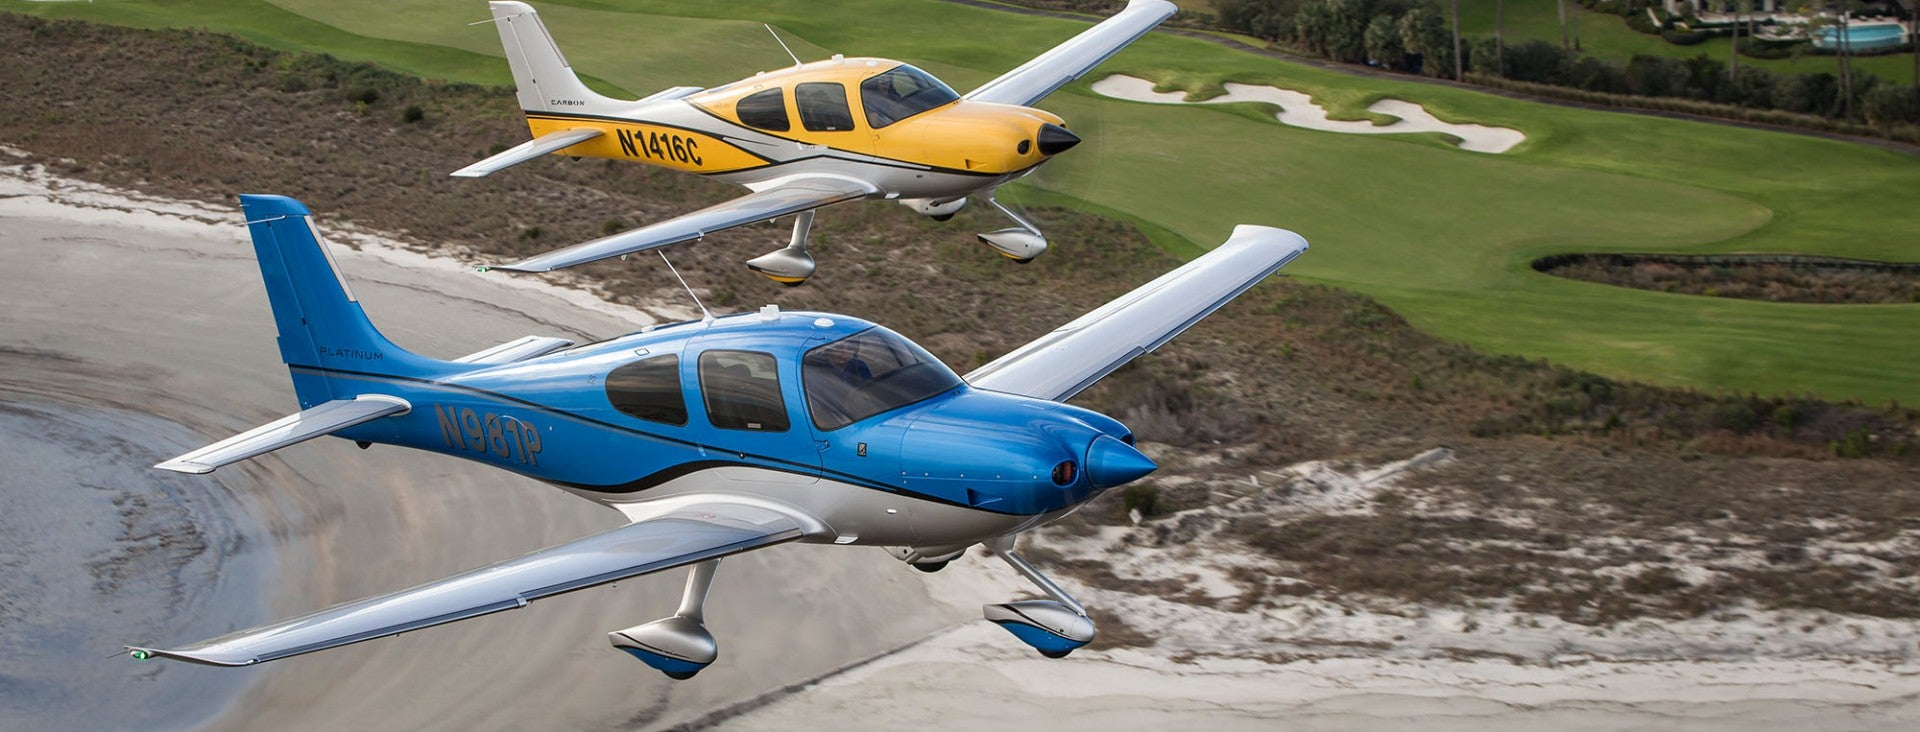 2016 Cirrus SR22 and SR22T